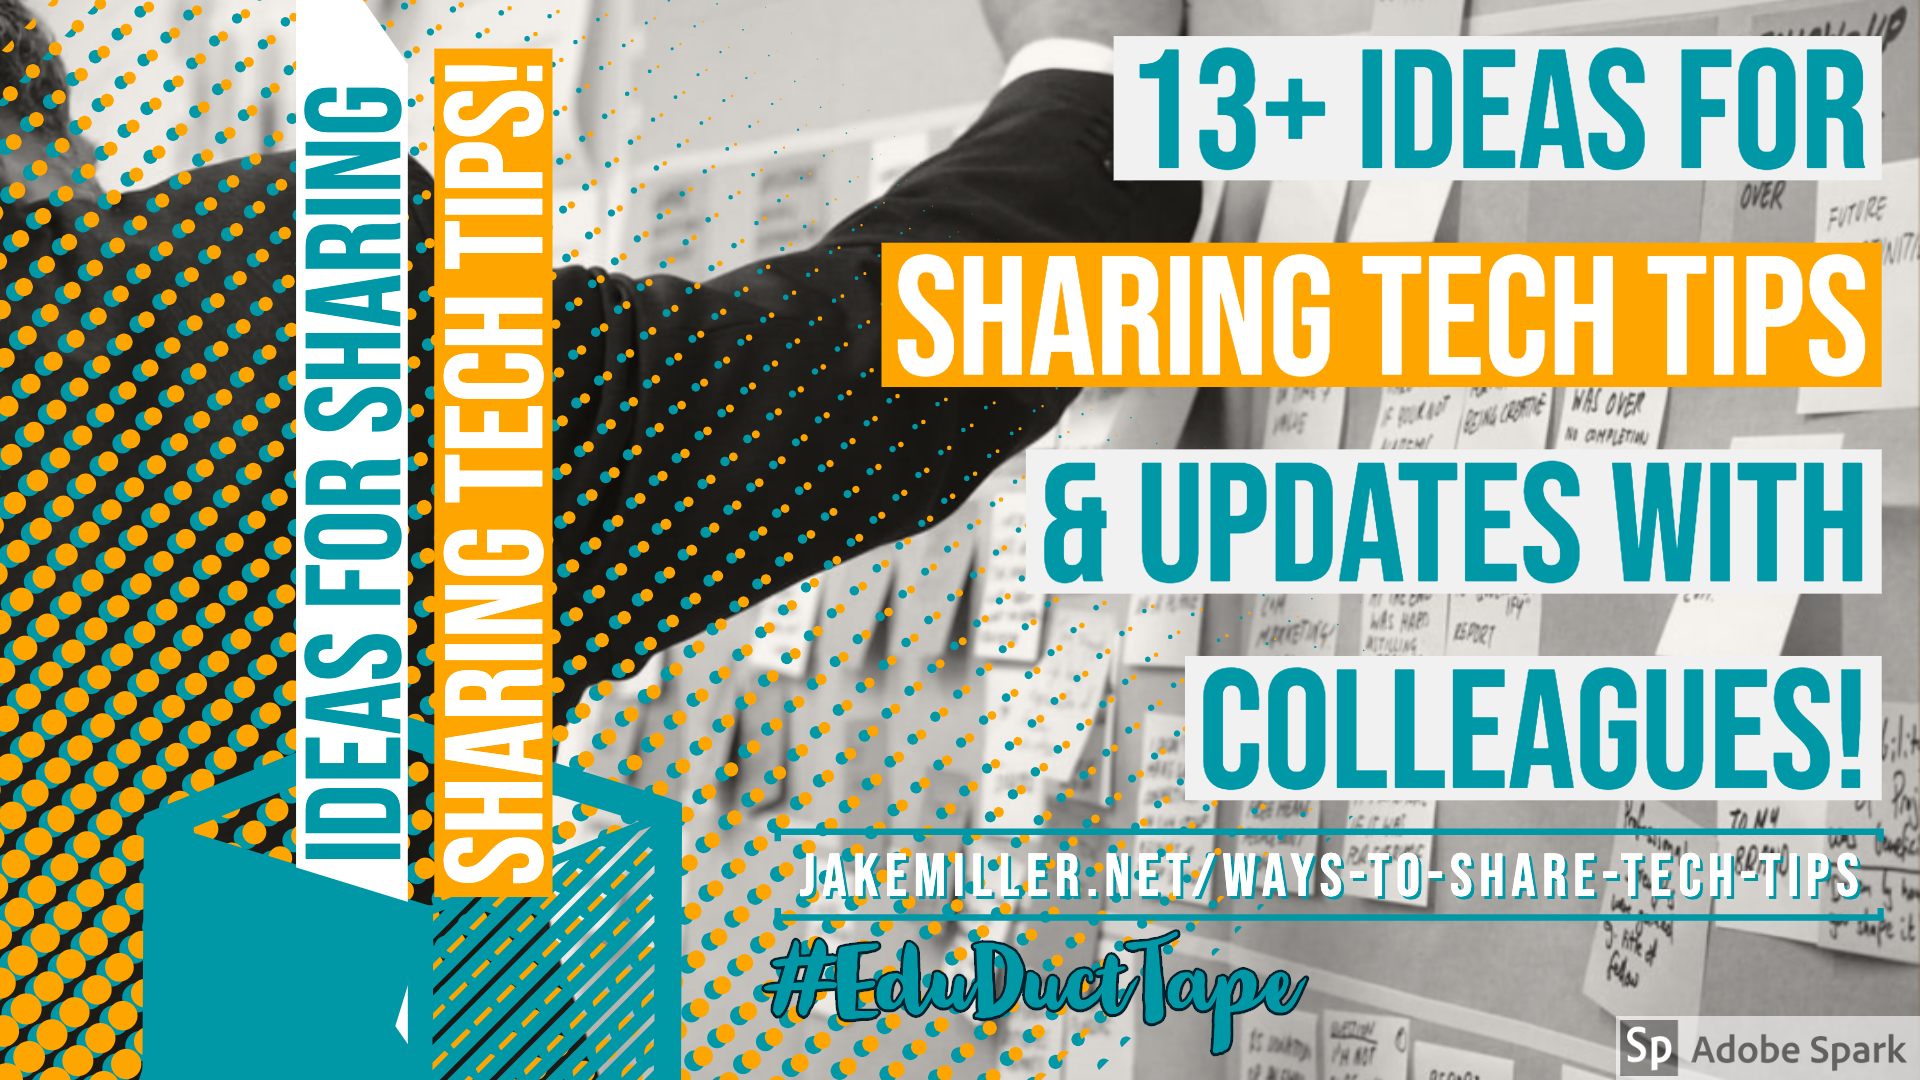 Ways to Share Tech Tips Graphic